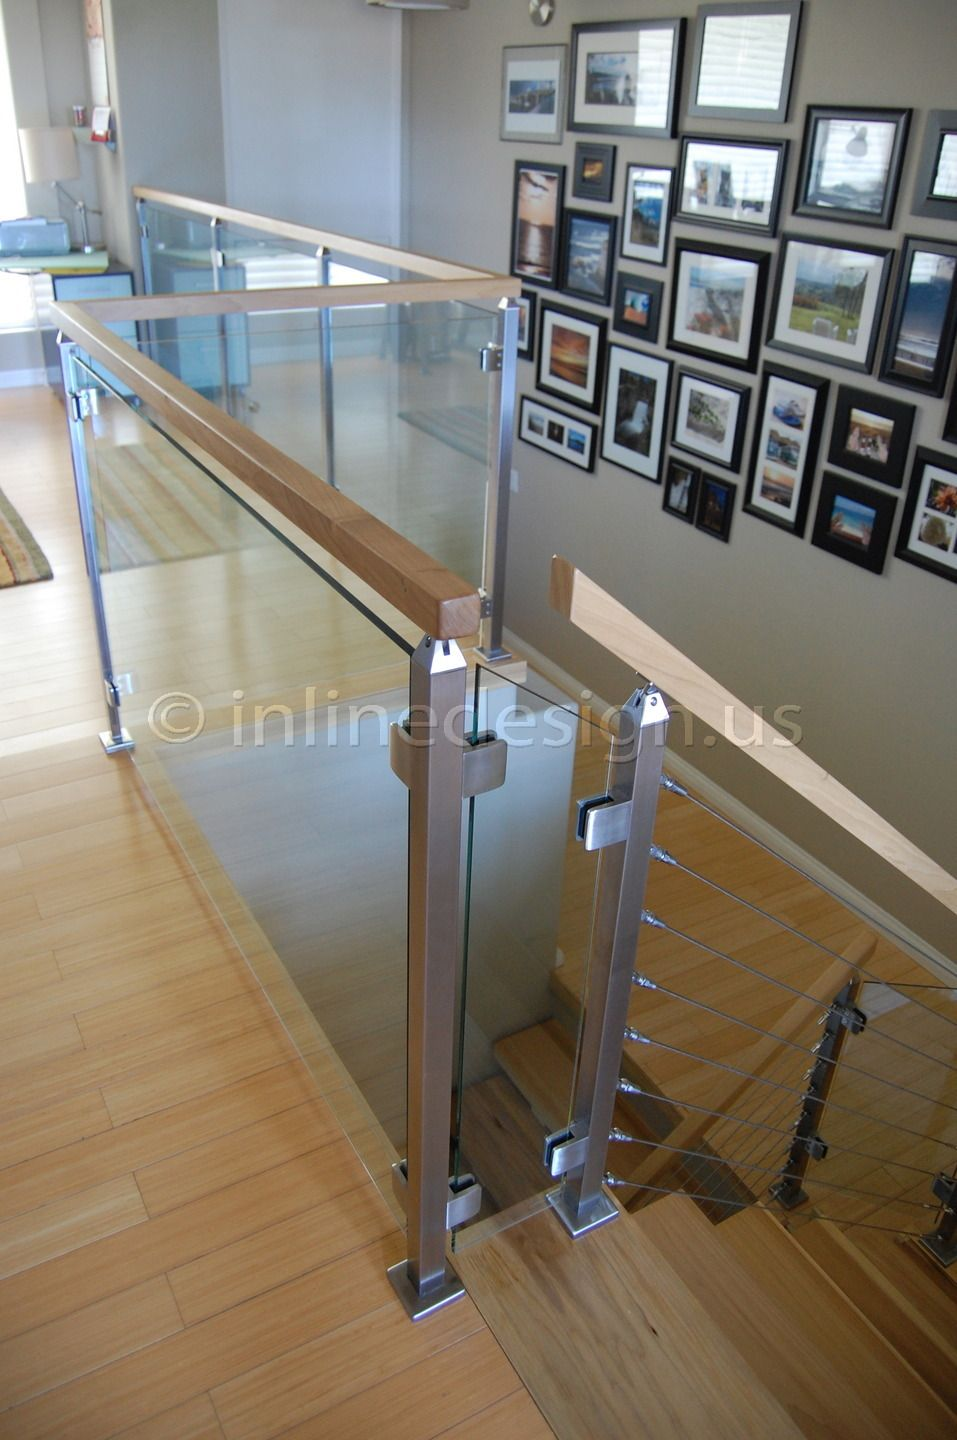 Best Glass Balusters For Railings Single Stainless Steel 400 x 300